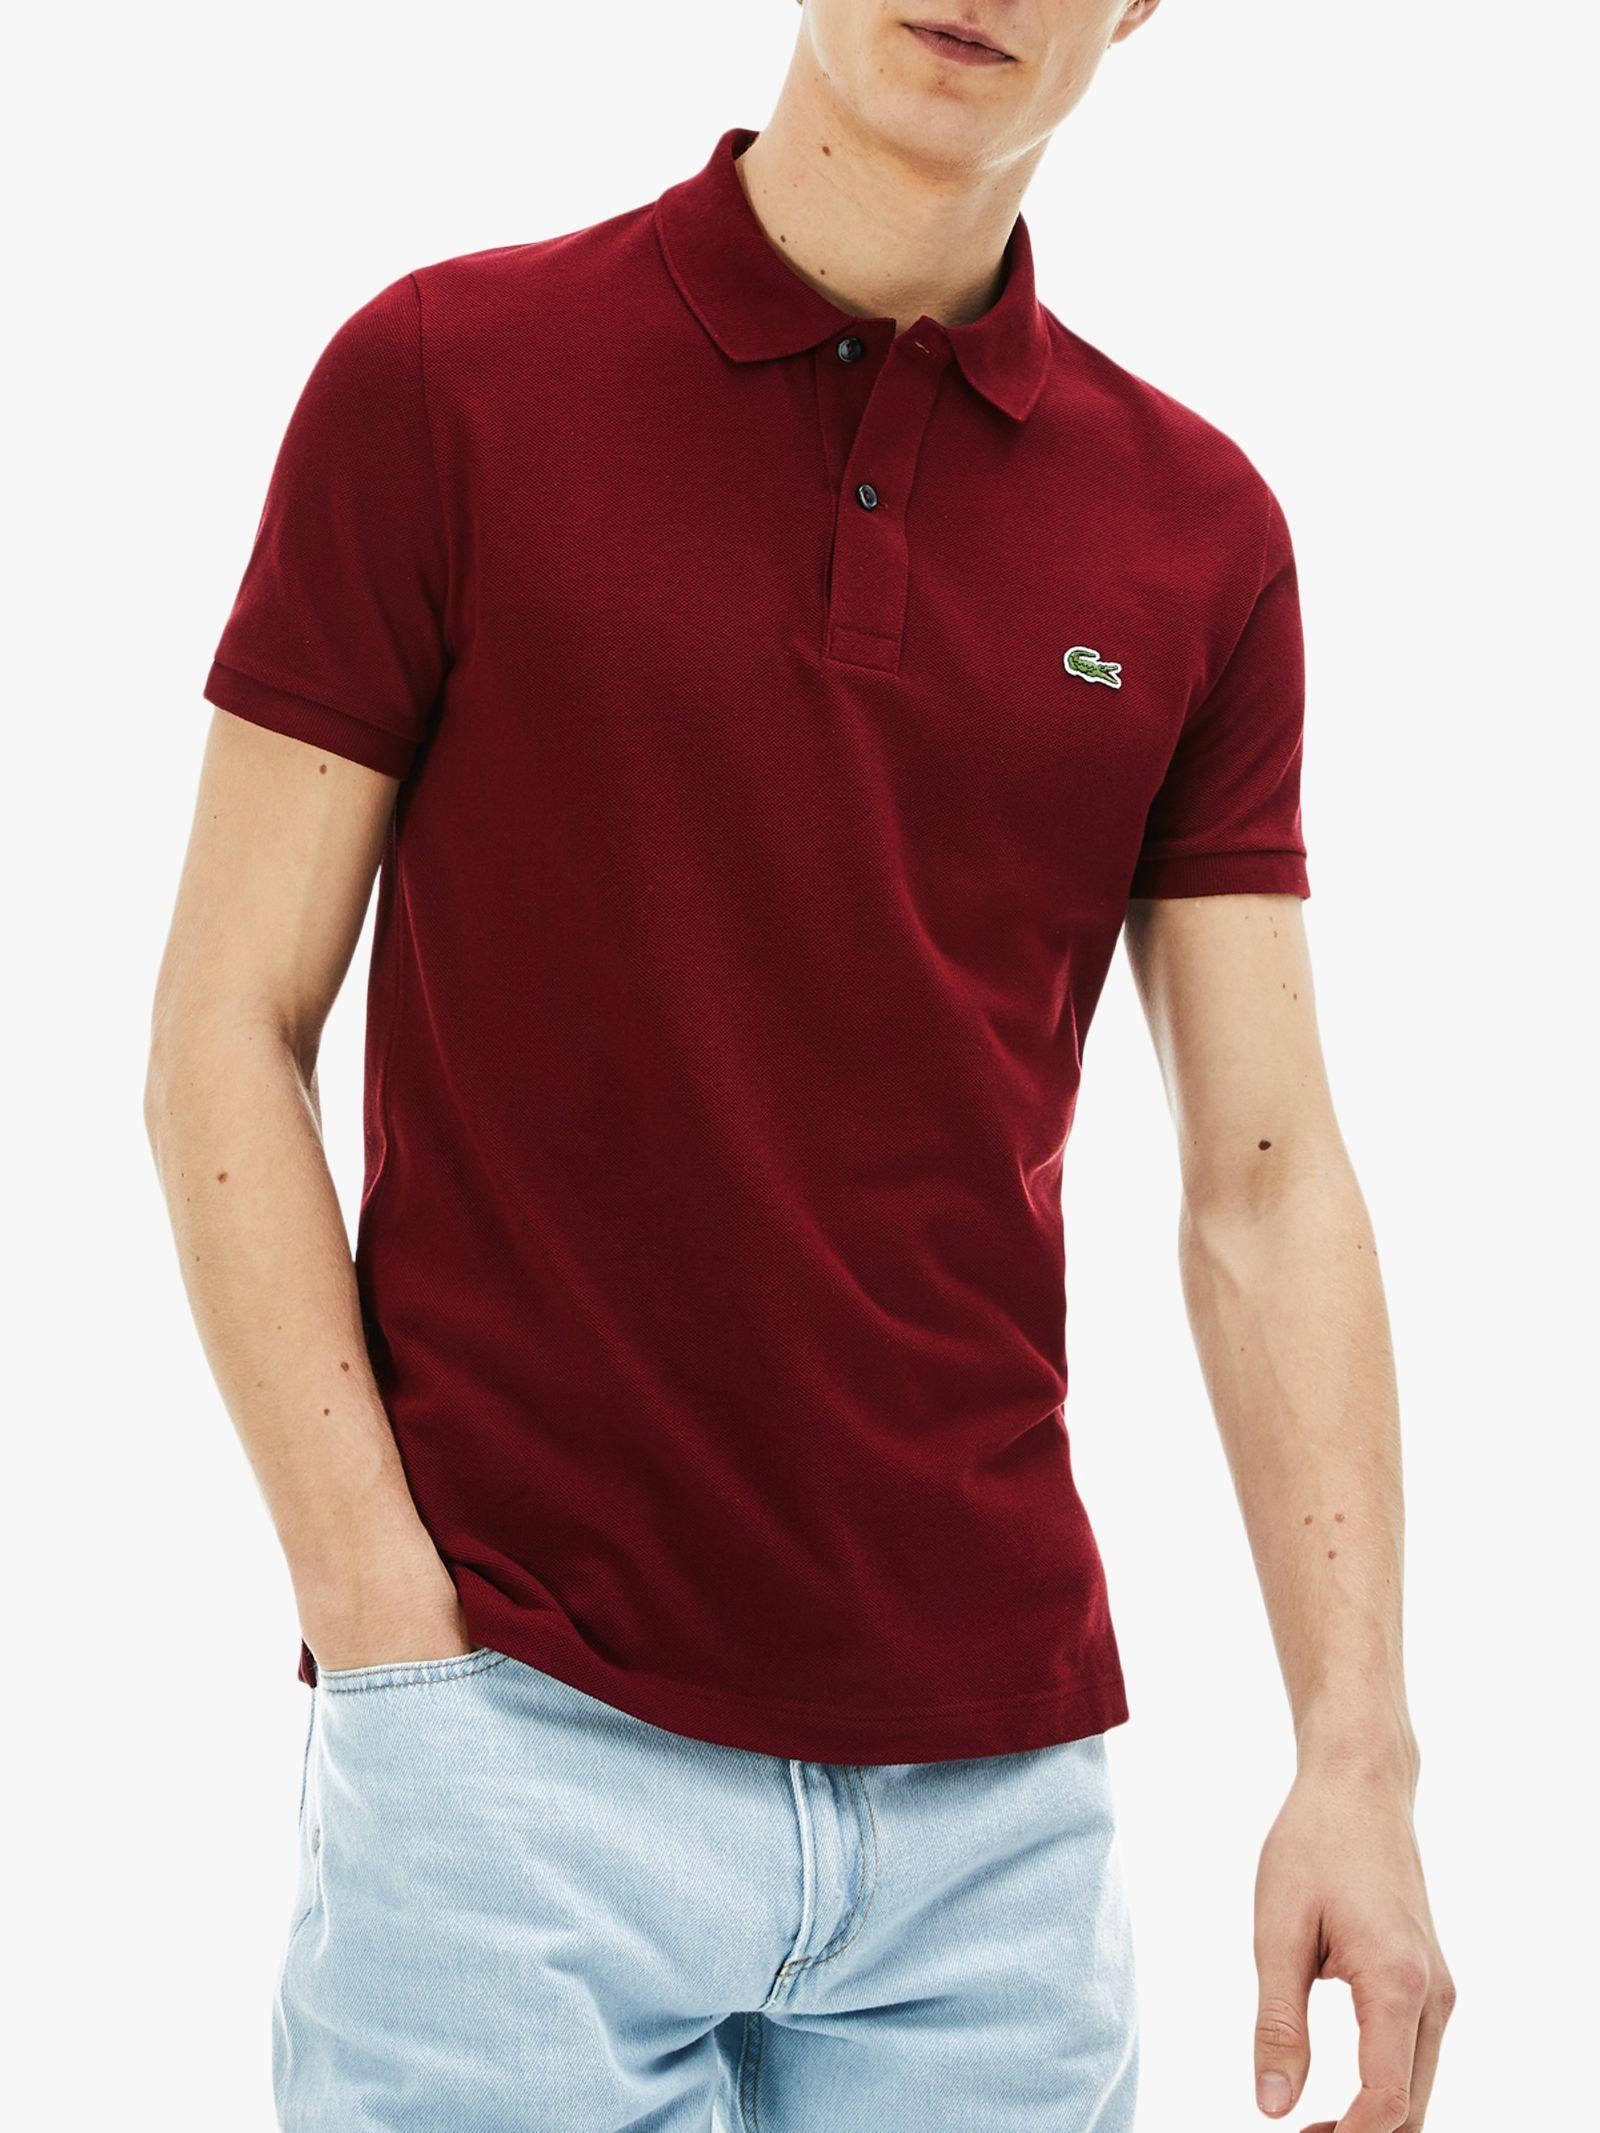 Lacoste Classic Slim Fit Short Sleeve Polo Shirt in Red for Men - Lyst 835d7da02